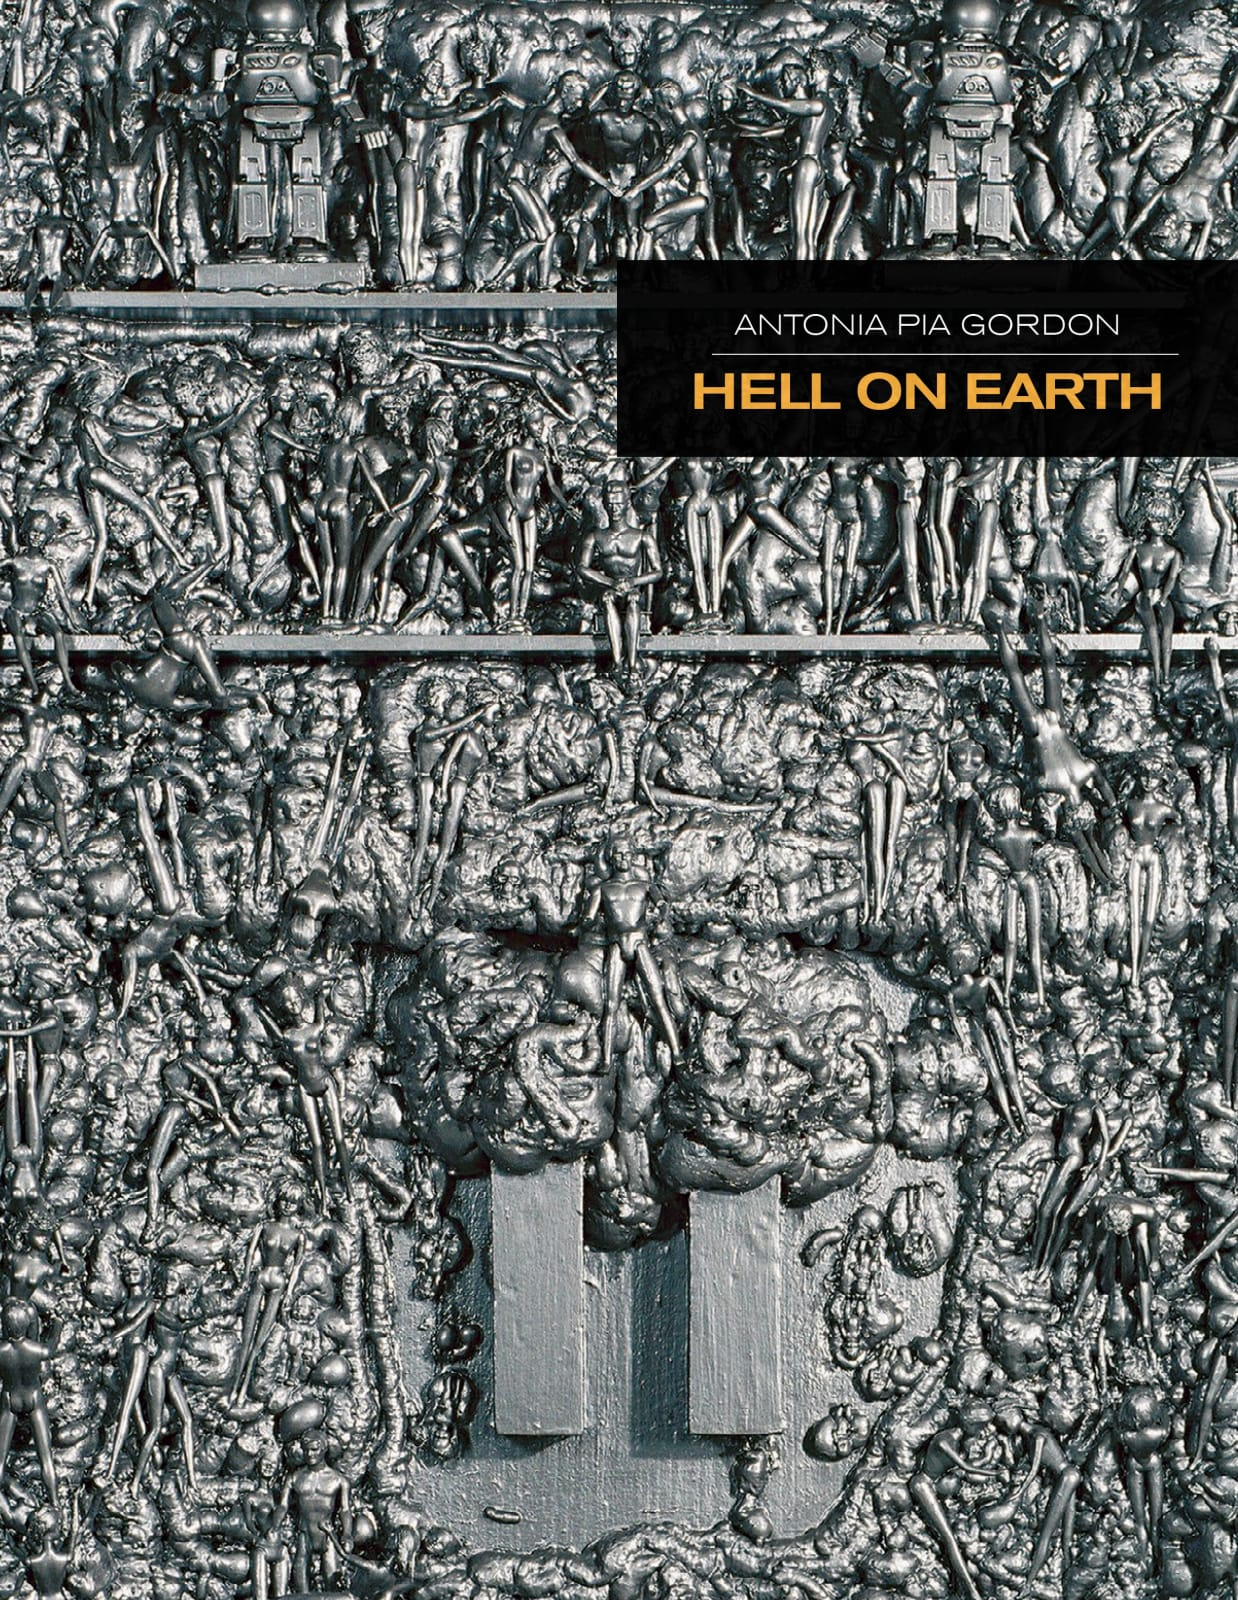 HELL ON EARTH DOWNLOAD PDF HERE